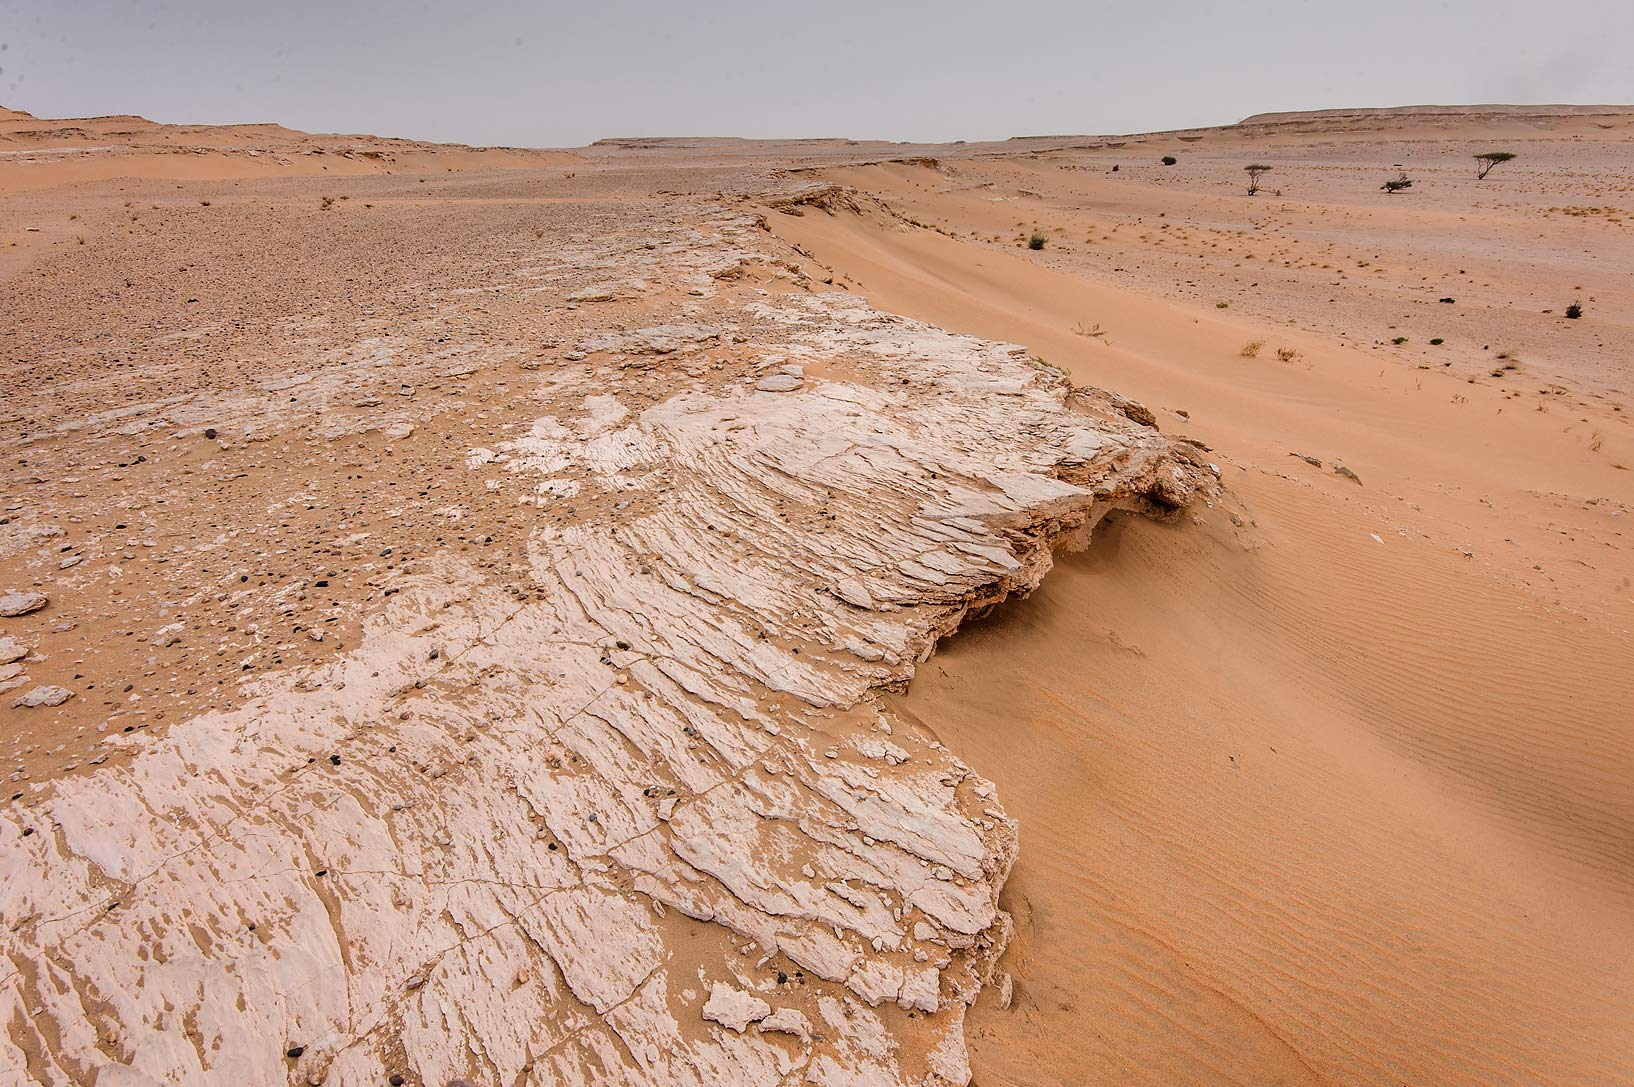 Wind abrasion of limestone cliffs in area of...near Salwa Rd. in southern Qatar